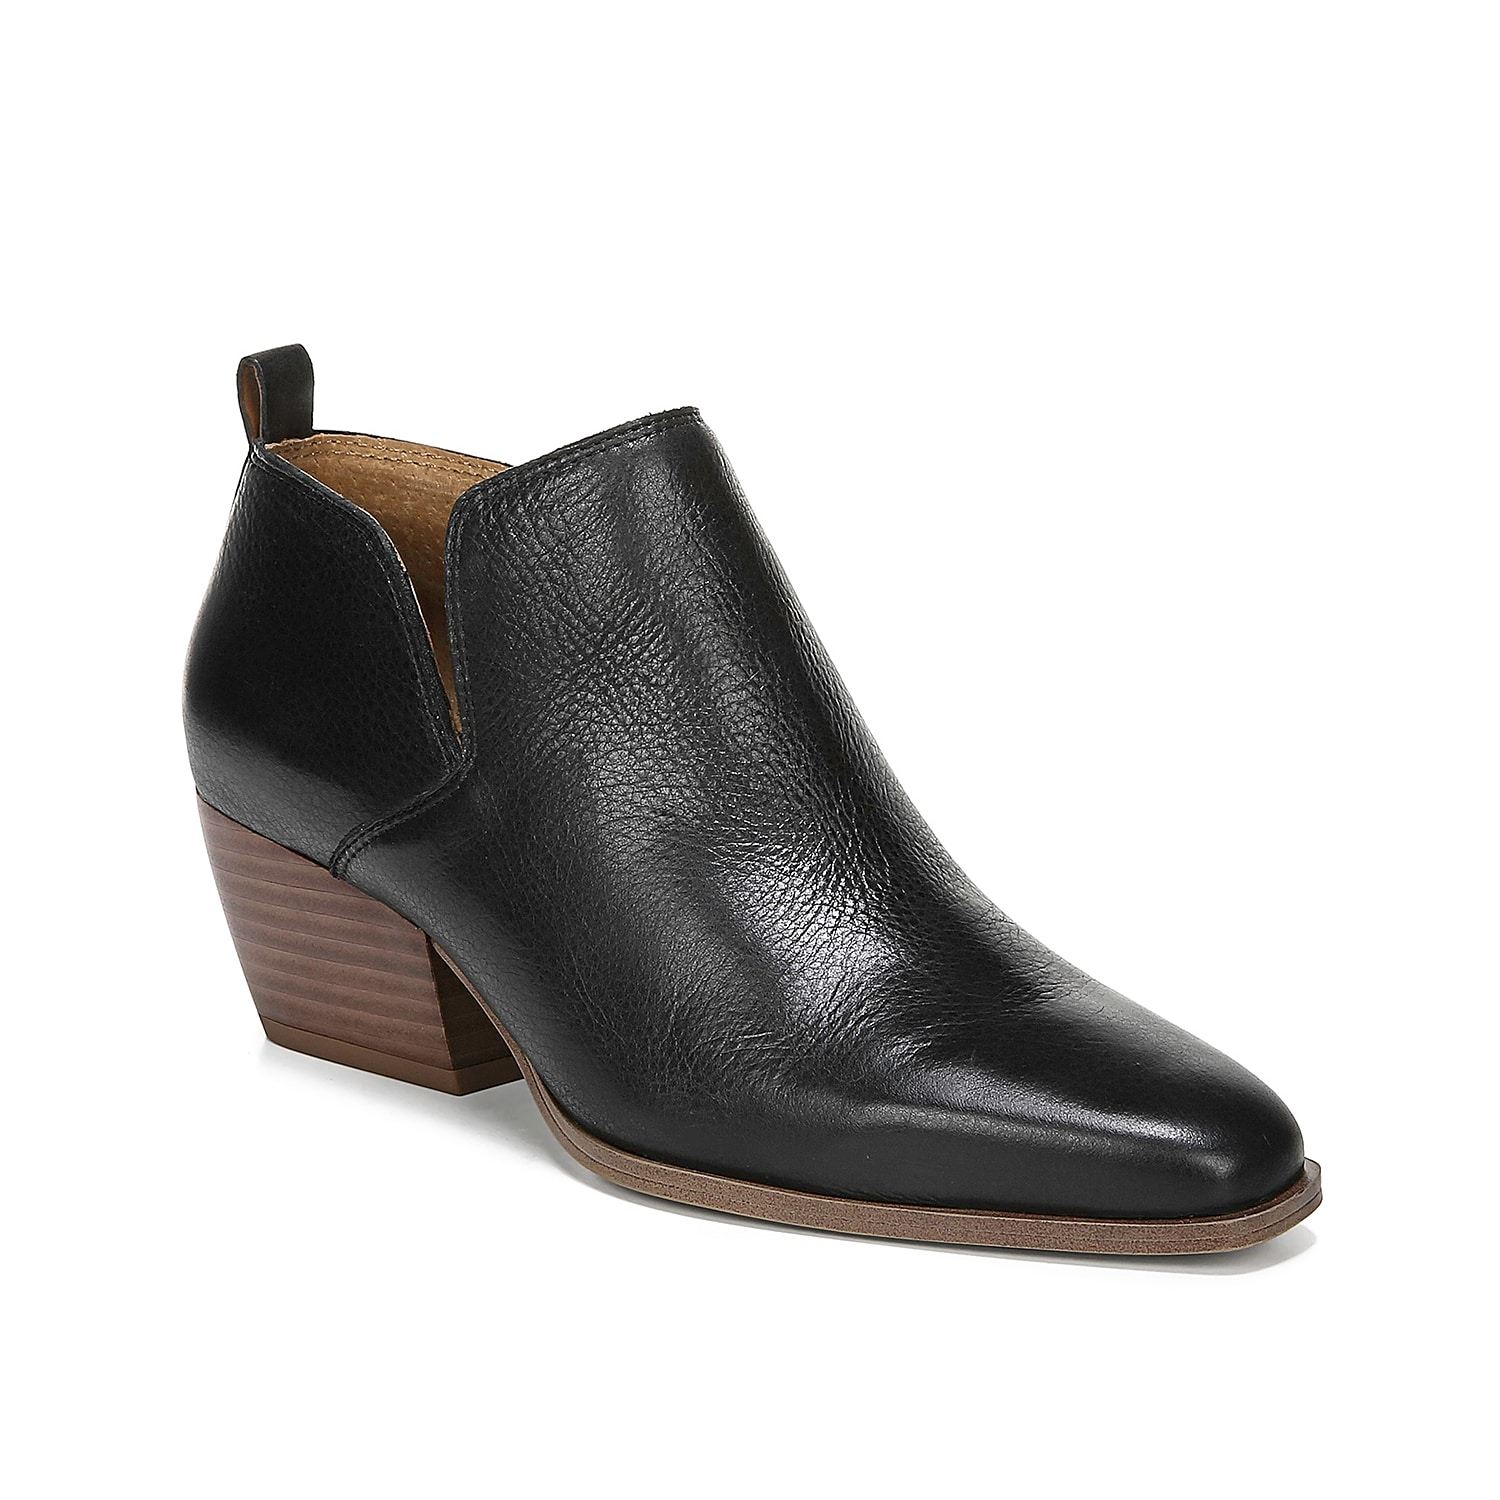 Add a tailored finish to your cool weather look with the Dingo bootie from Franco Sarto. This ankle boot features a low block heel and asymmetrical topline for a sleek finish to jeans and sweaters. Click here for Boot Measuring Guide.